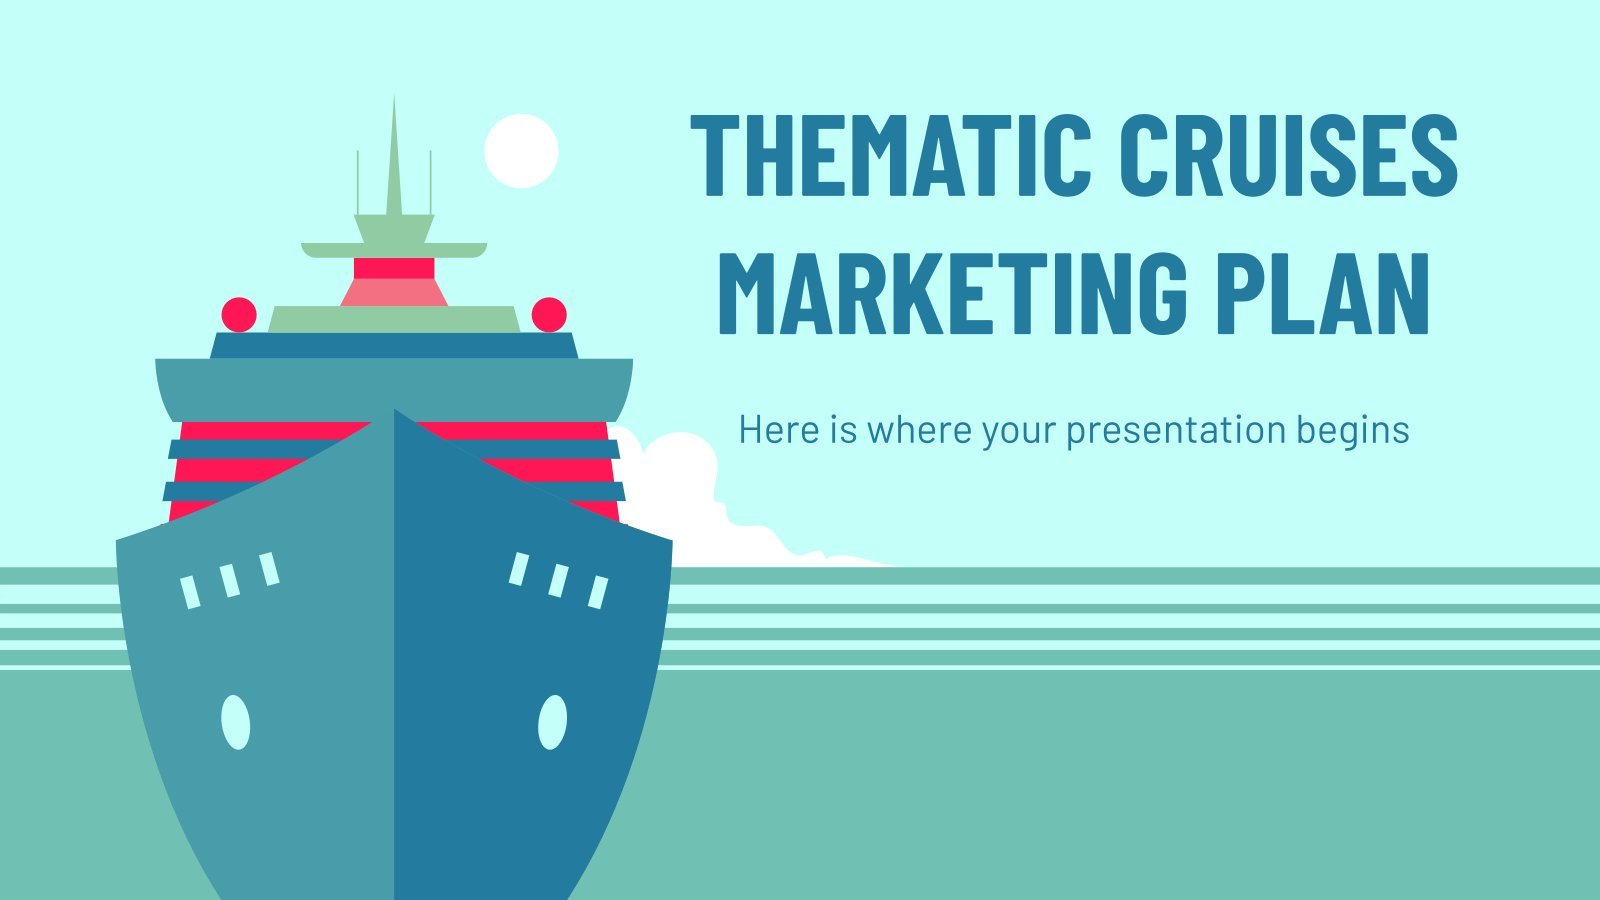 Thematic Cruises Marketing Plan presentation template